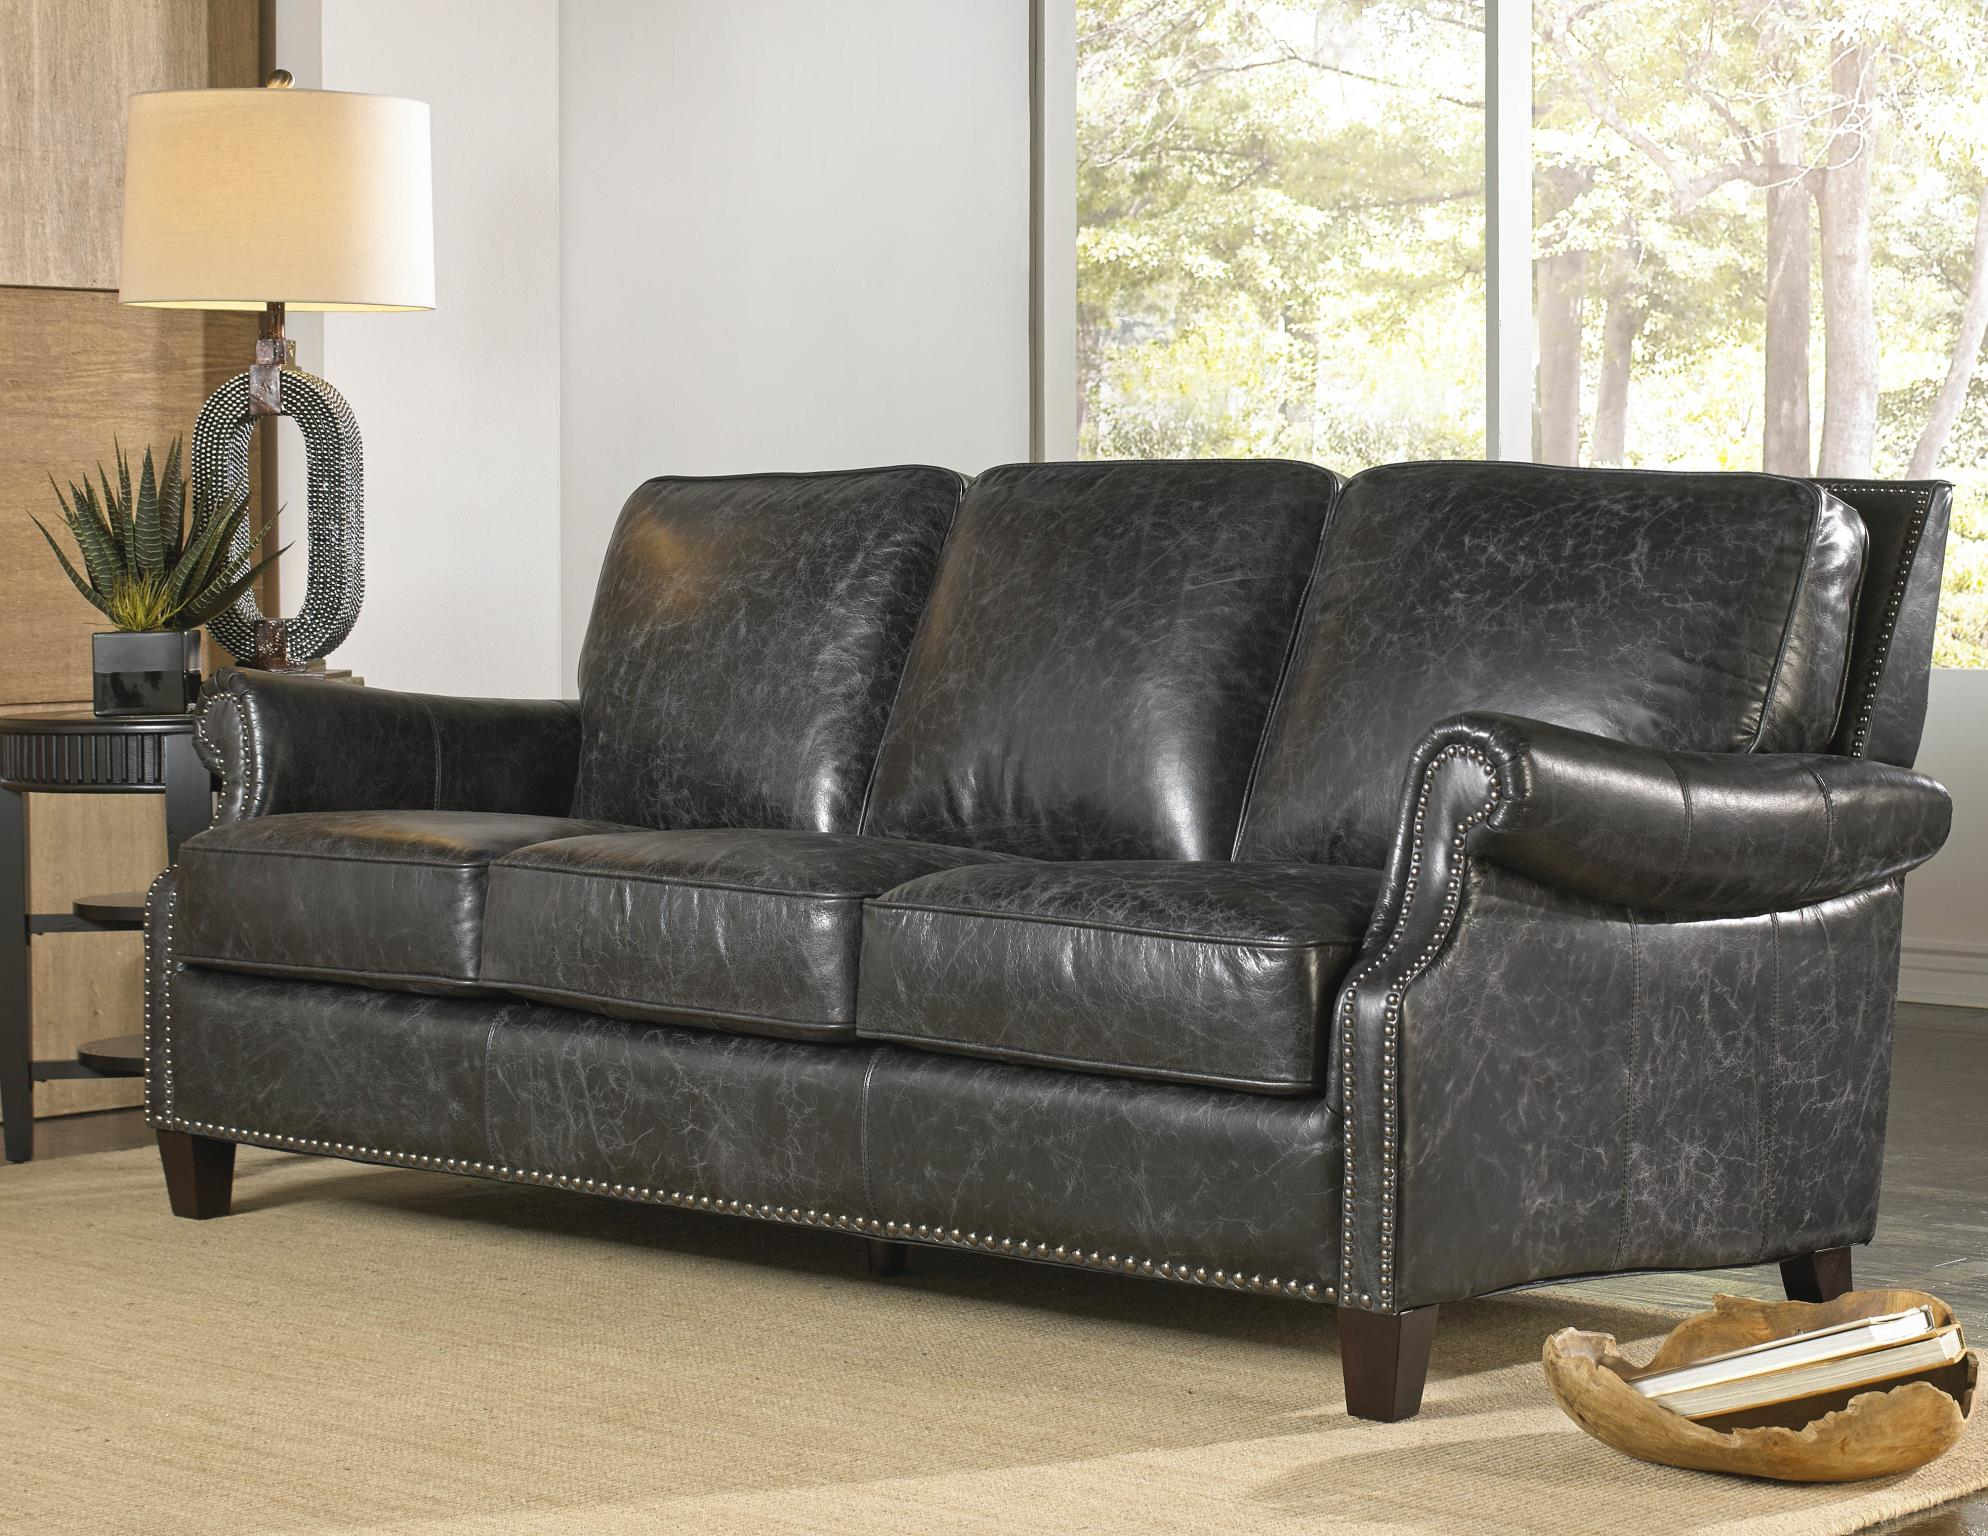 Sleeper Sofa Quick Delivery Lazzaro Leather Furniture Sofas And Sectionals